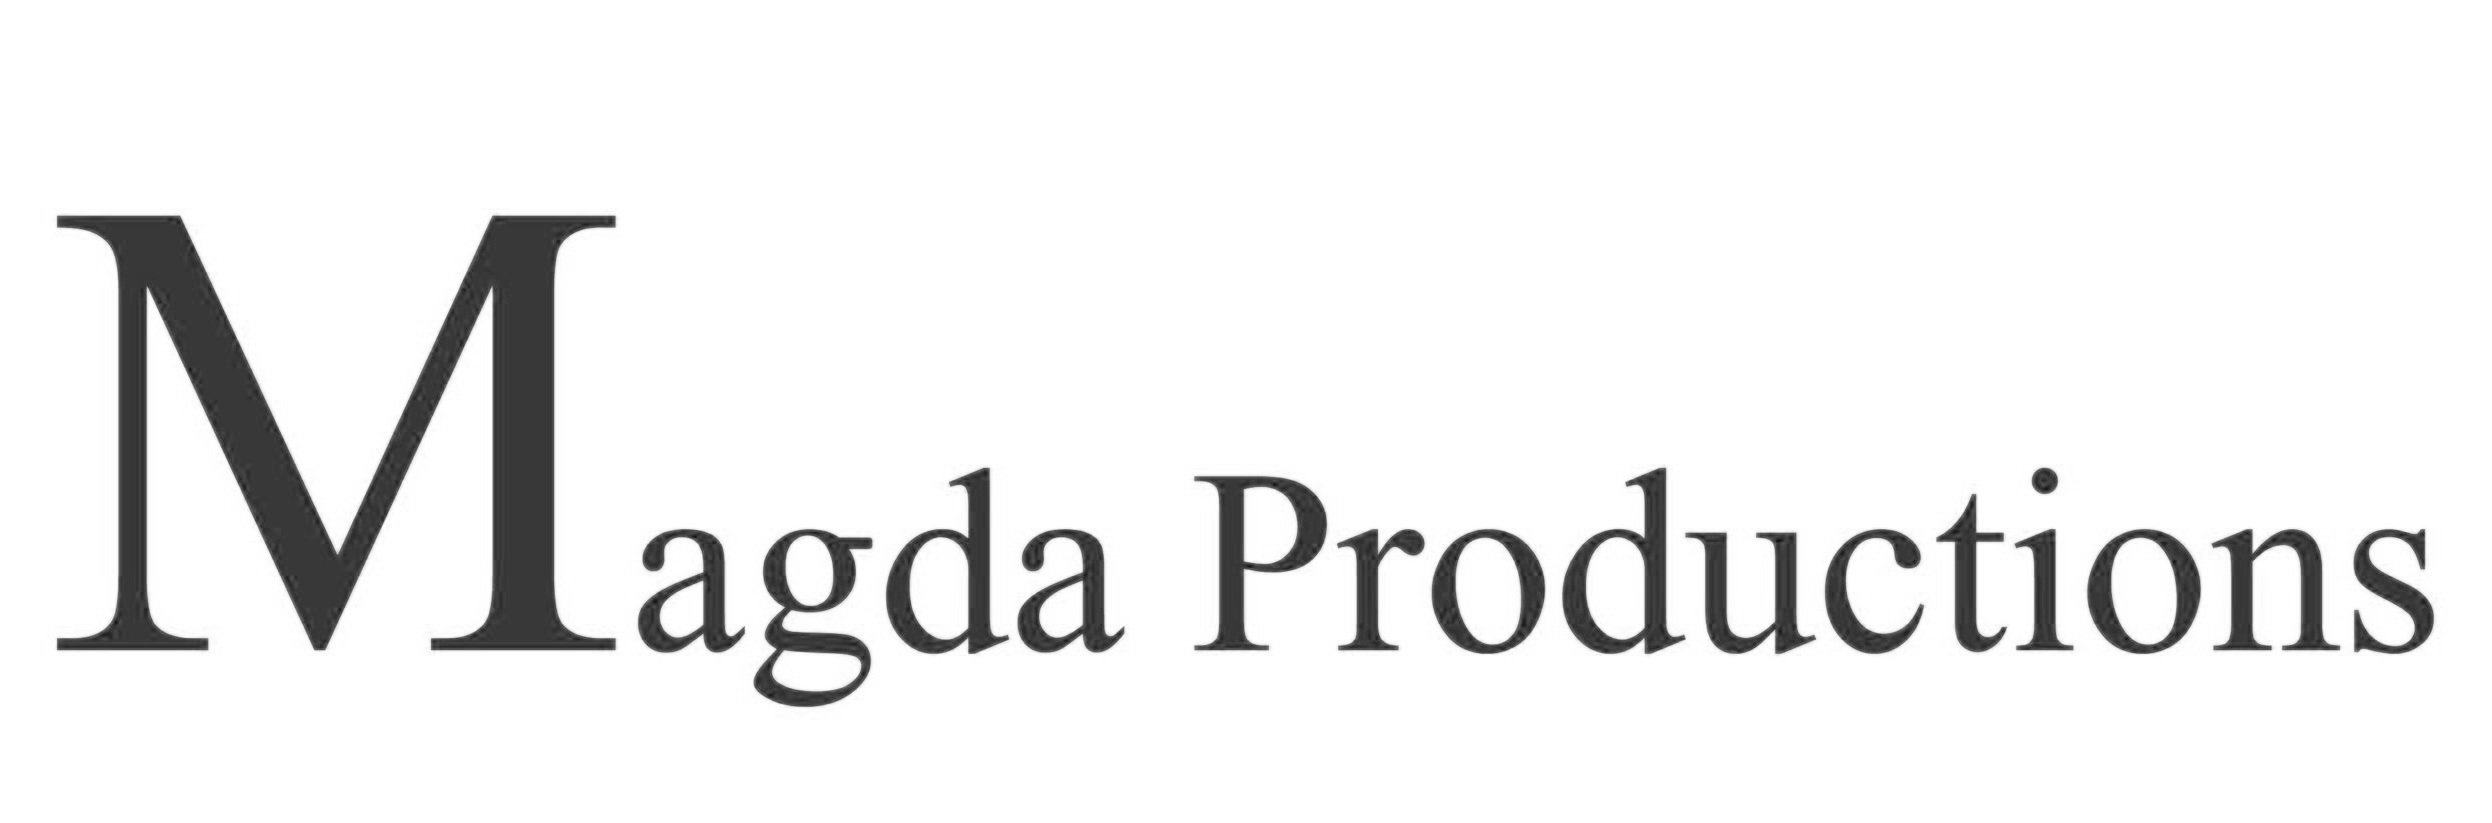 Magda Productions.jpg